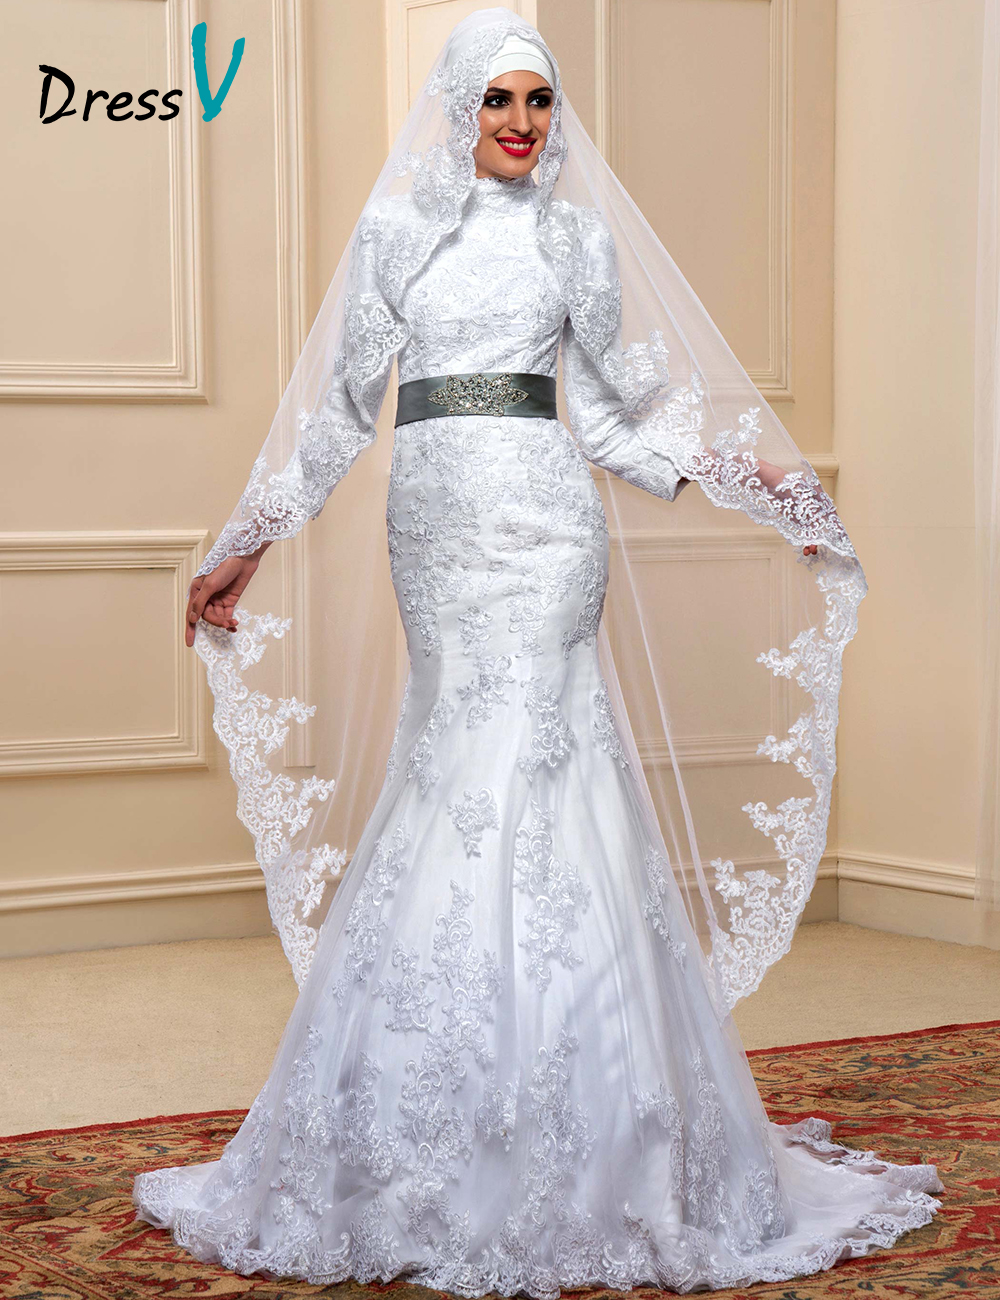 2017 New Fashion Muslim Wedding Dresses White Lace High Neck with Long Sleeves Beadings Buttons Bowknot Mermaid Bride Dresses